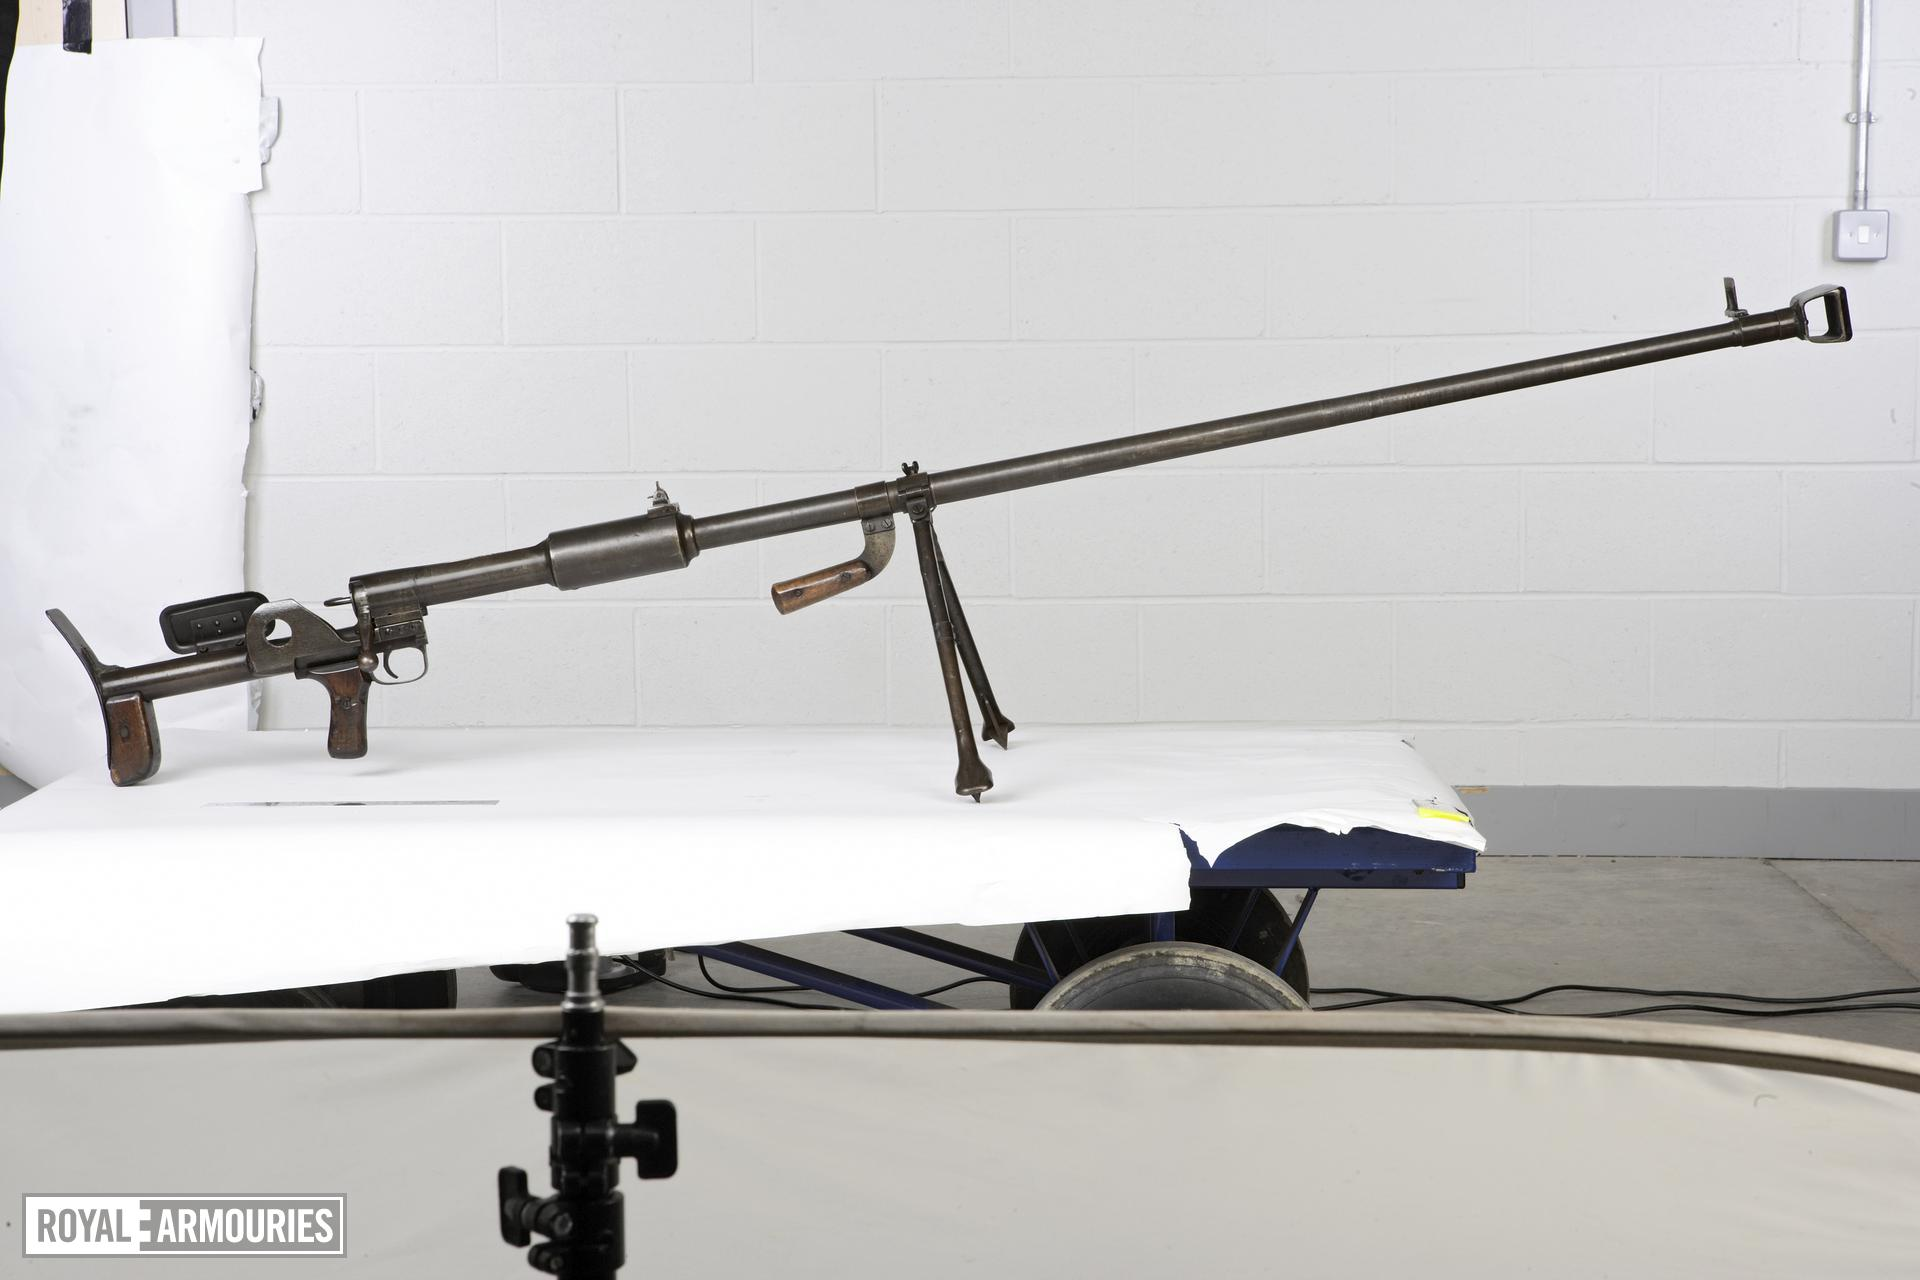 Centrefire bolt-action anti-tank rifle - PTRD-41